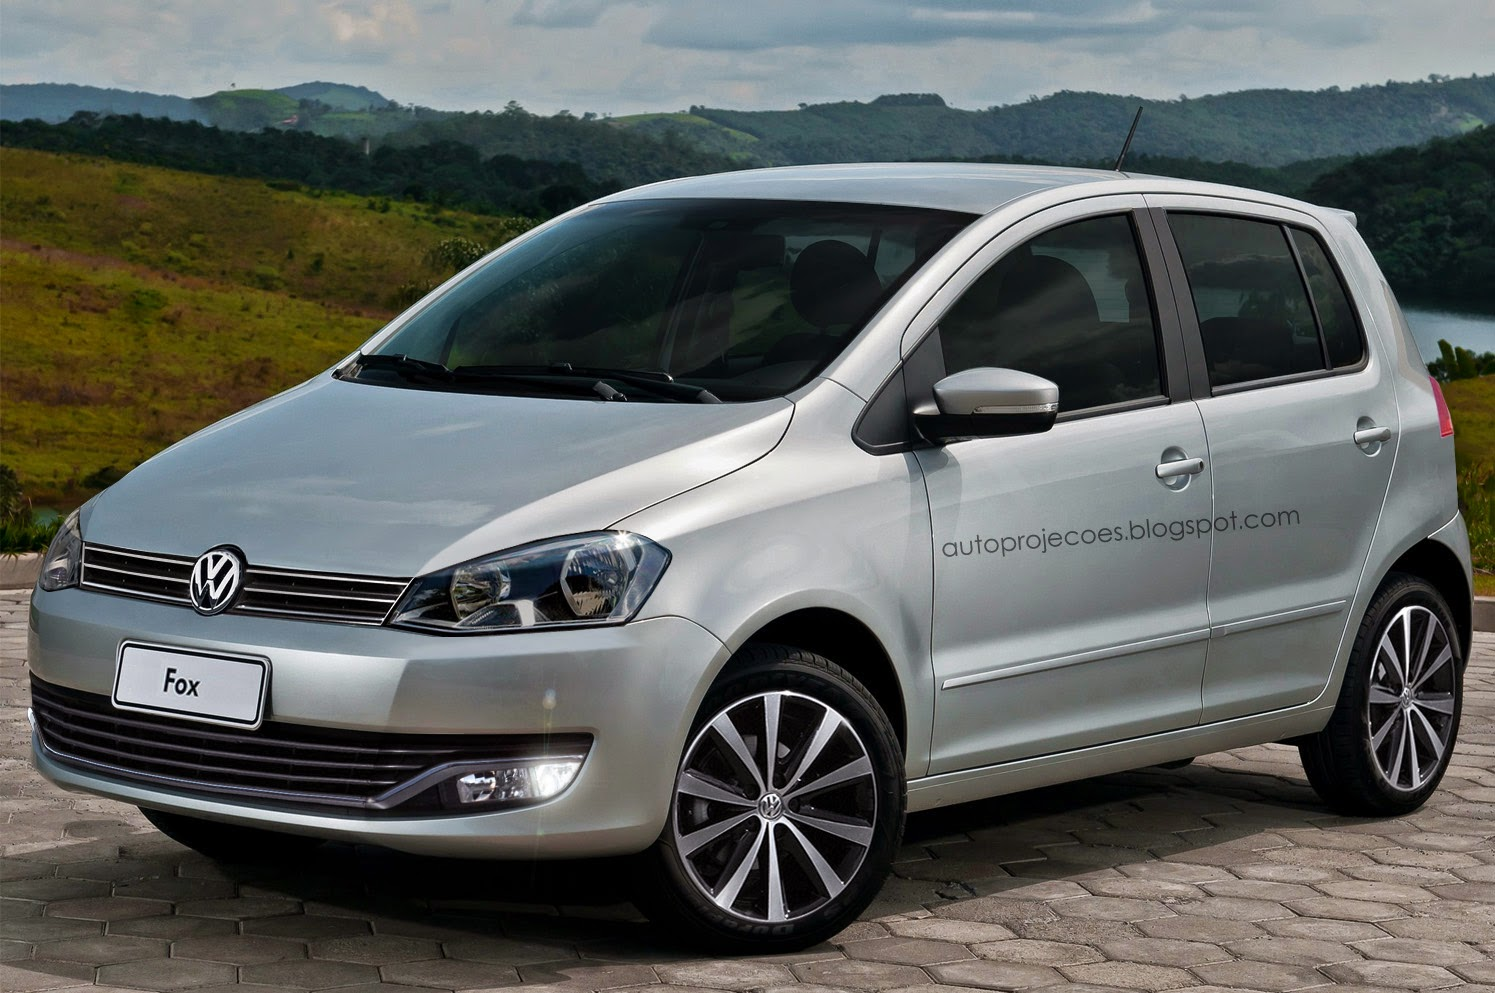 2015 volkswagen fox pictures information and specs auto. Black Bedroom Furniture Sets. Home Design Ideas